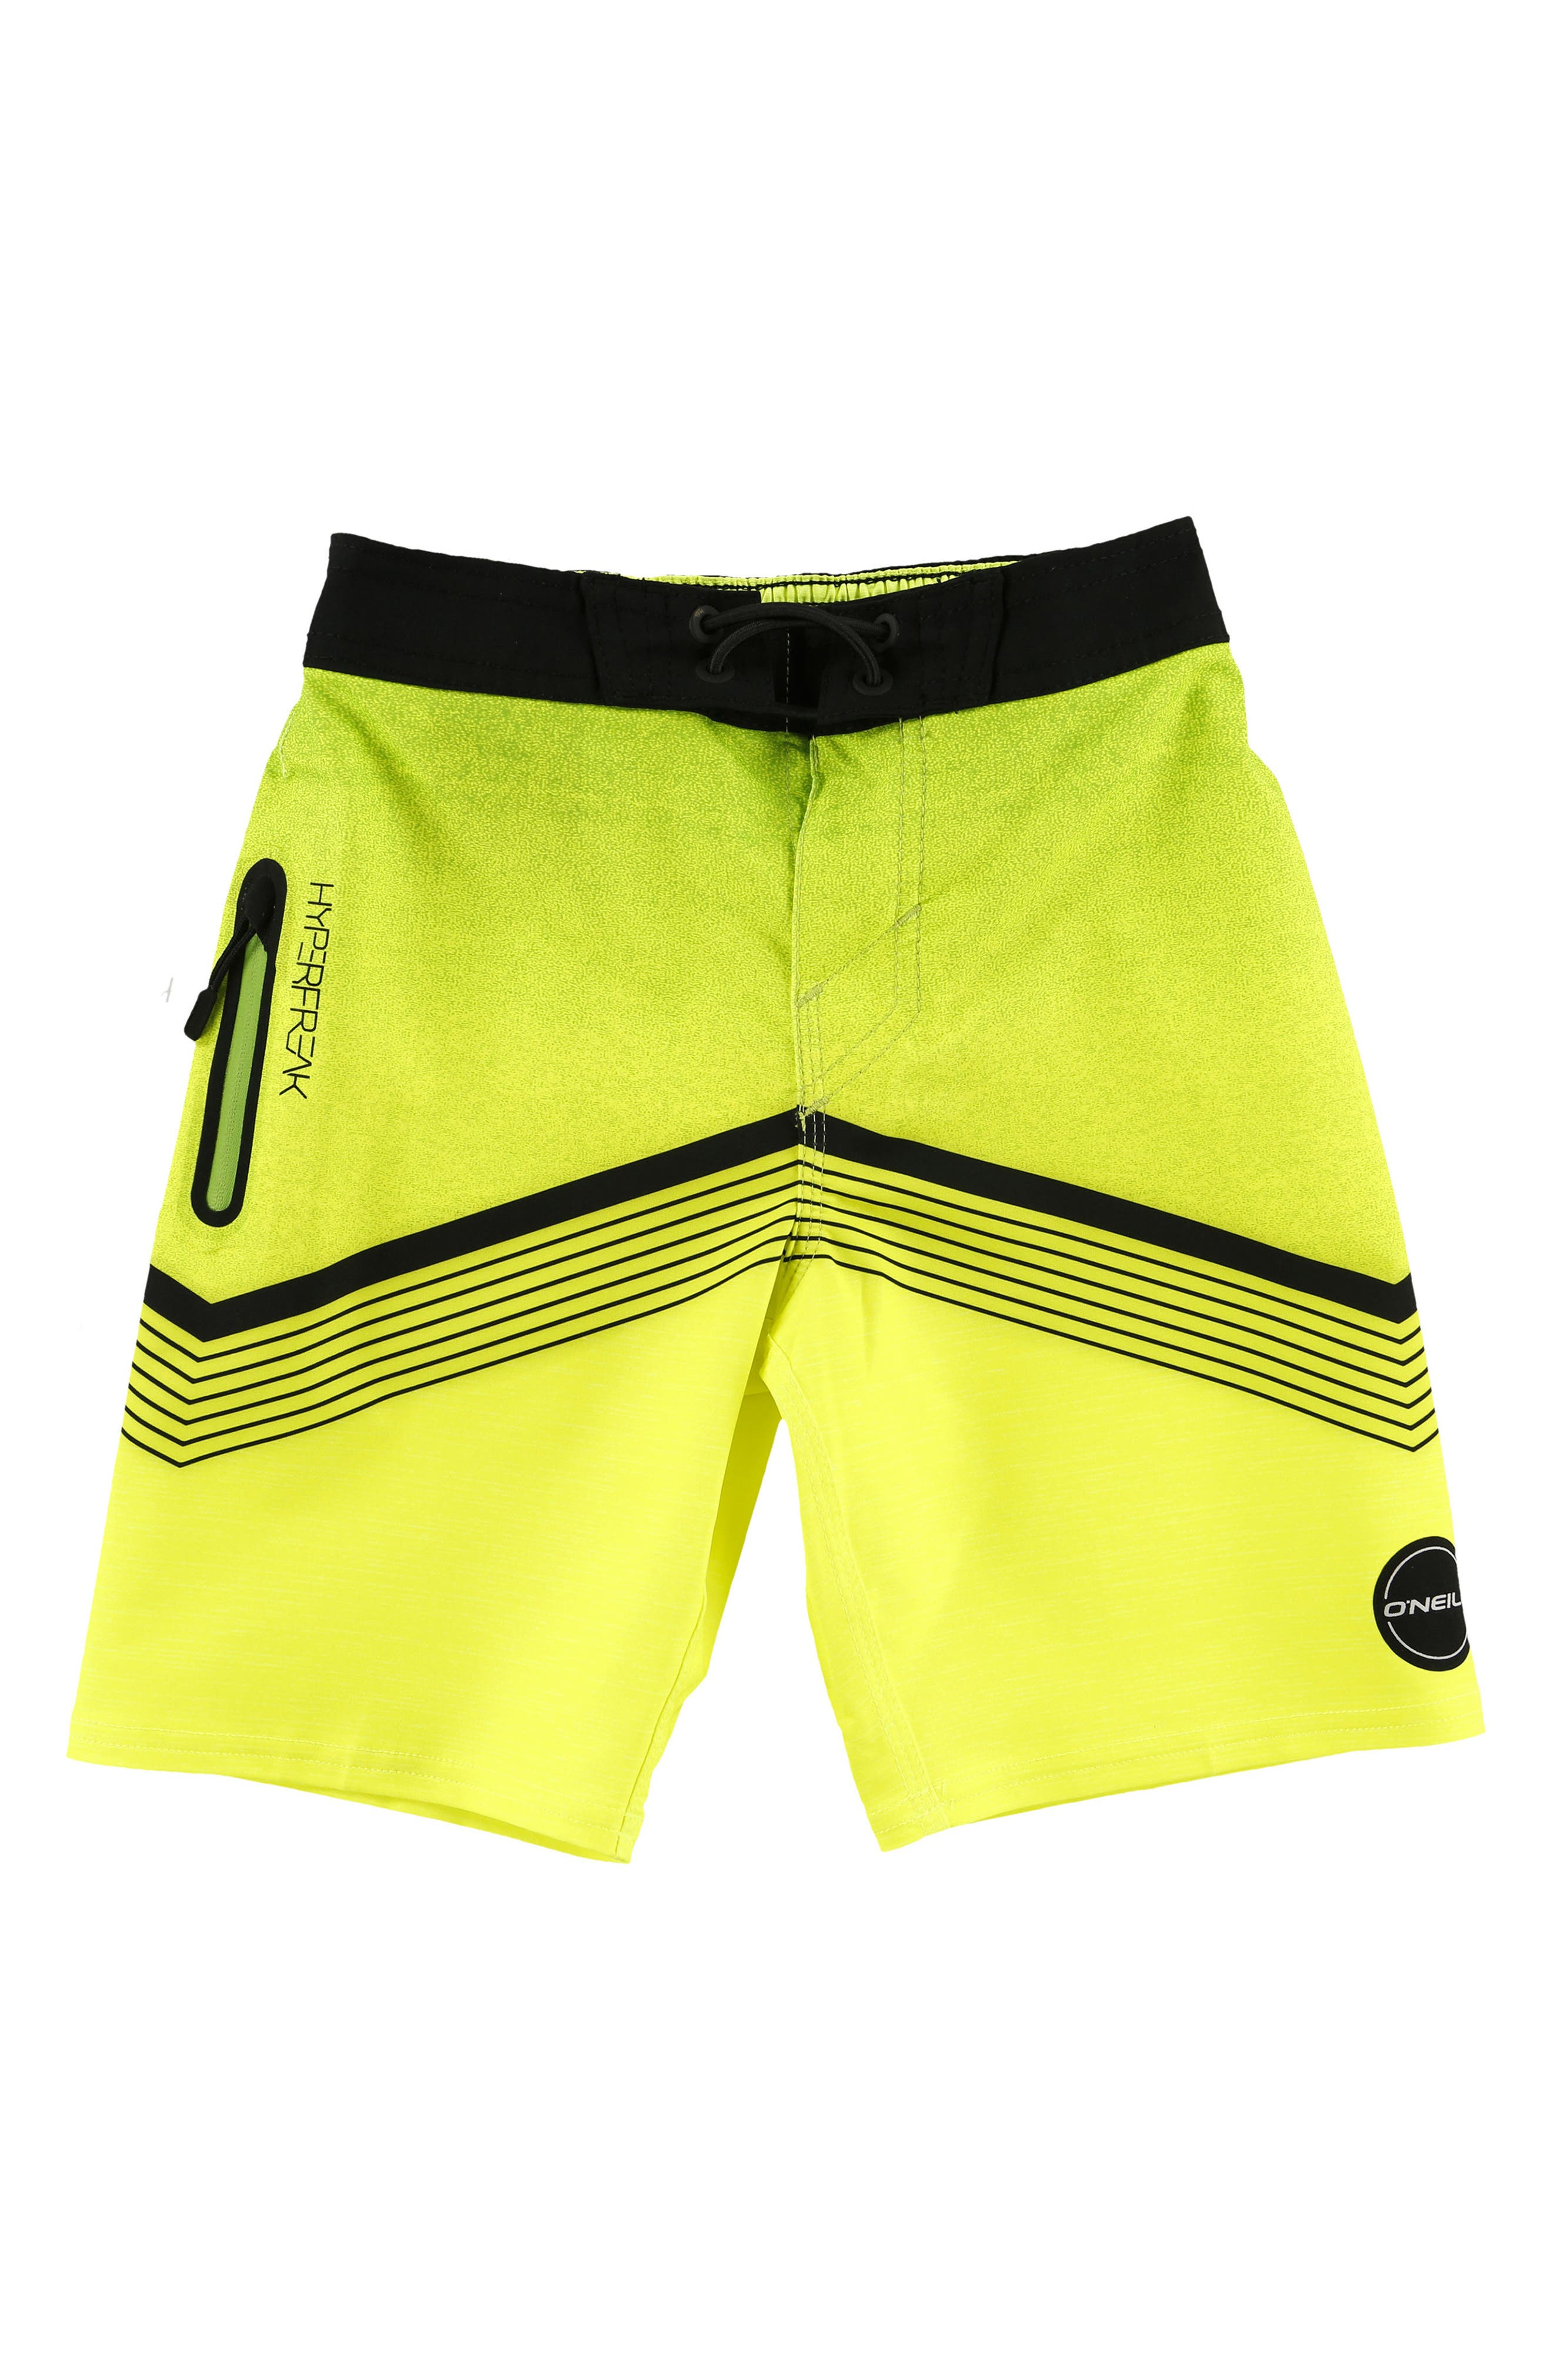 Hyperfreak Stretch Board Shorts,                             Main thumbnail 1, color,                             300